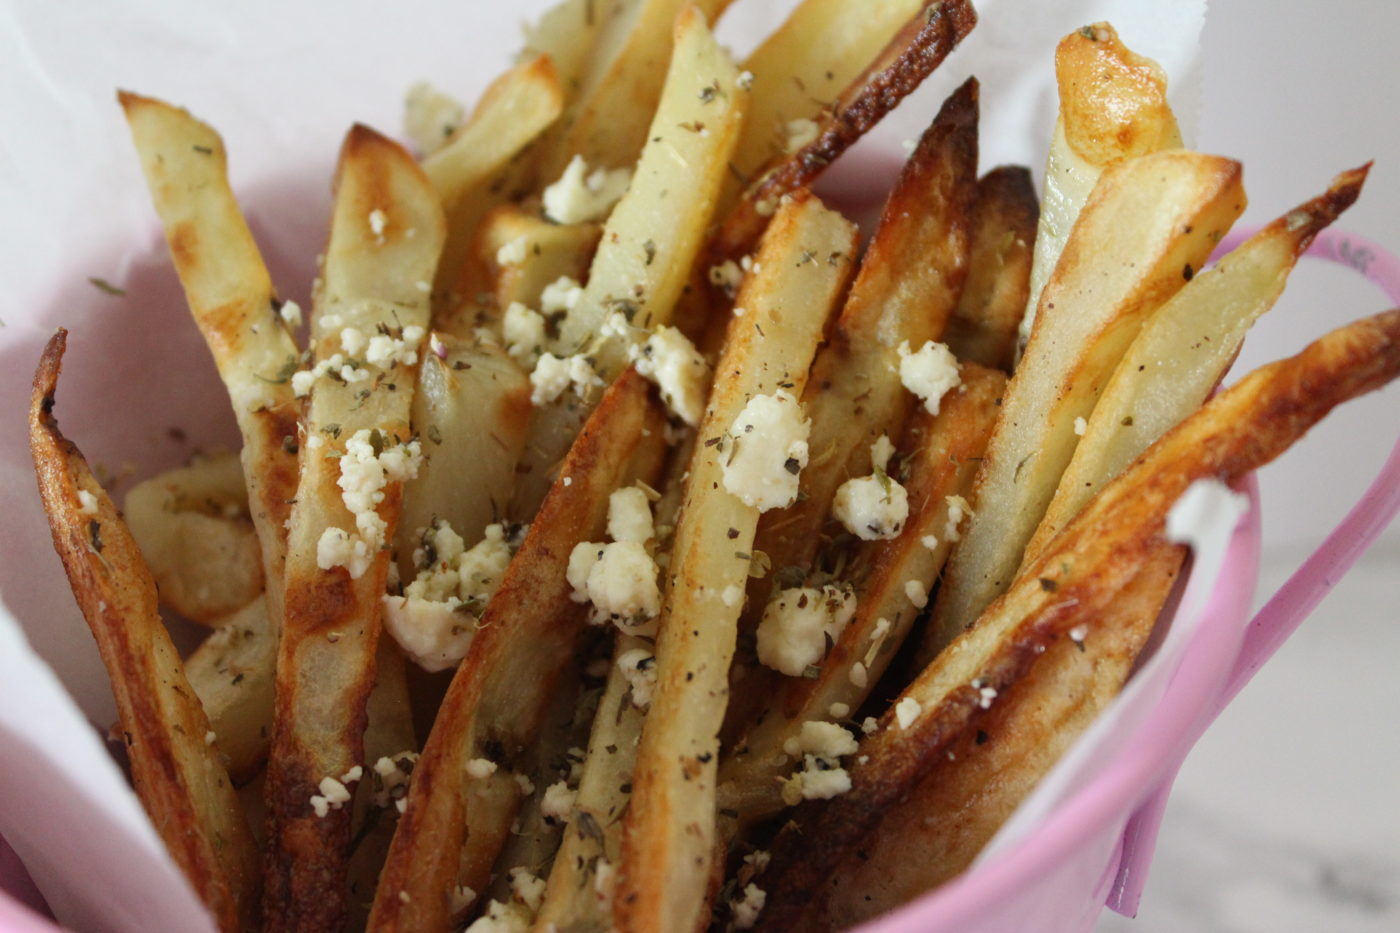 I love fried french fries but baking them allows all of the flavors to bake into it in a really delicious way. Try it.